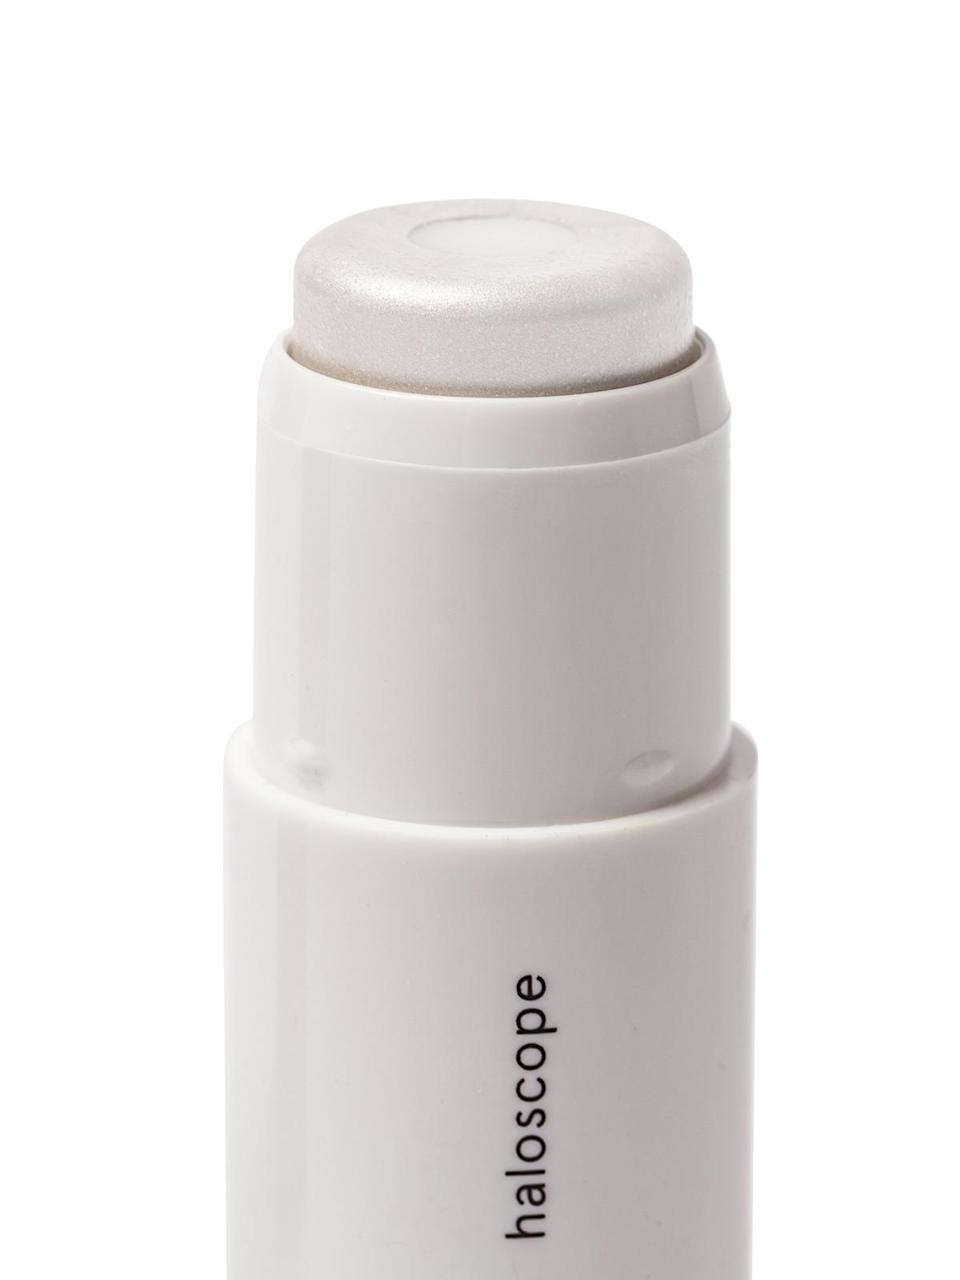 """<h3>Haloscope <br></h3> <br>The highlighter that made us believe in highlighter again is a unique specimen, an easy, user-friendly twist-up stick of dewy, non-sparkly skin. You can thank the hydrating oils in the core for that — unlike other cream highlighters, this one incorporates vitamin-rich moisturizers that only add to the supernatural sheen.<br><br><strong>Glossier</strong> Haloscope, $, available at <a href=""""https://go.skimresources.com/?id=30283X879131&url=https%3A%2F%2Fwww.glossier.com%2Fproducts%2Fhaloscope"""" rel=""""nofollow noopener"""" target=""""_blank"""" data-ylk=""""slk:Glossier"""" class=""""link rapid-noclick-resp"""">Glossier</a><br>"""